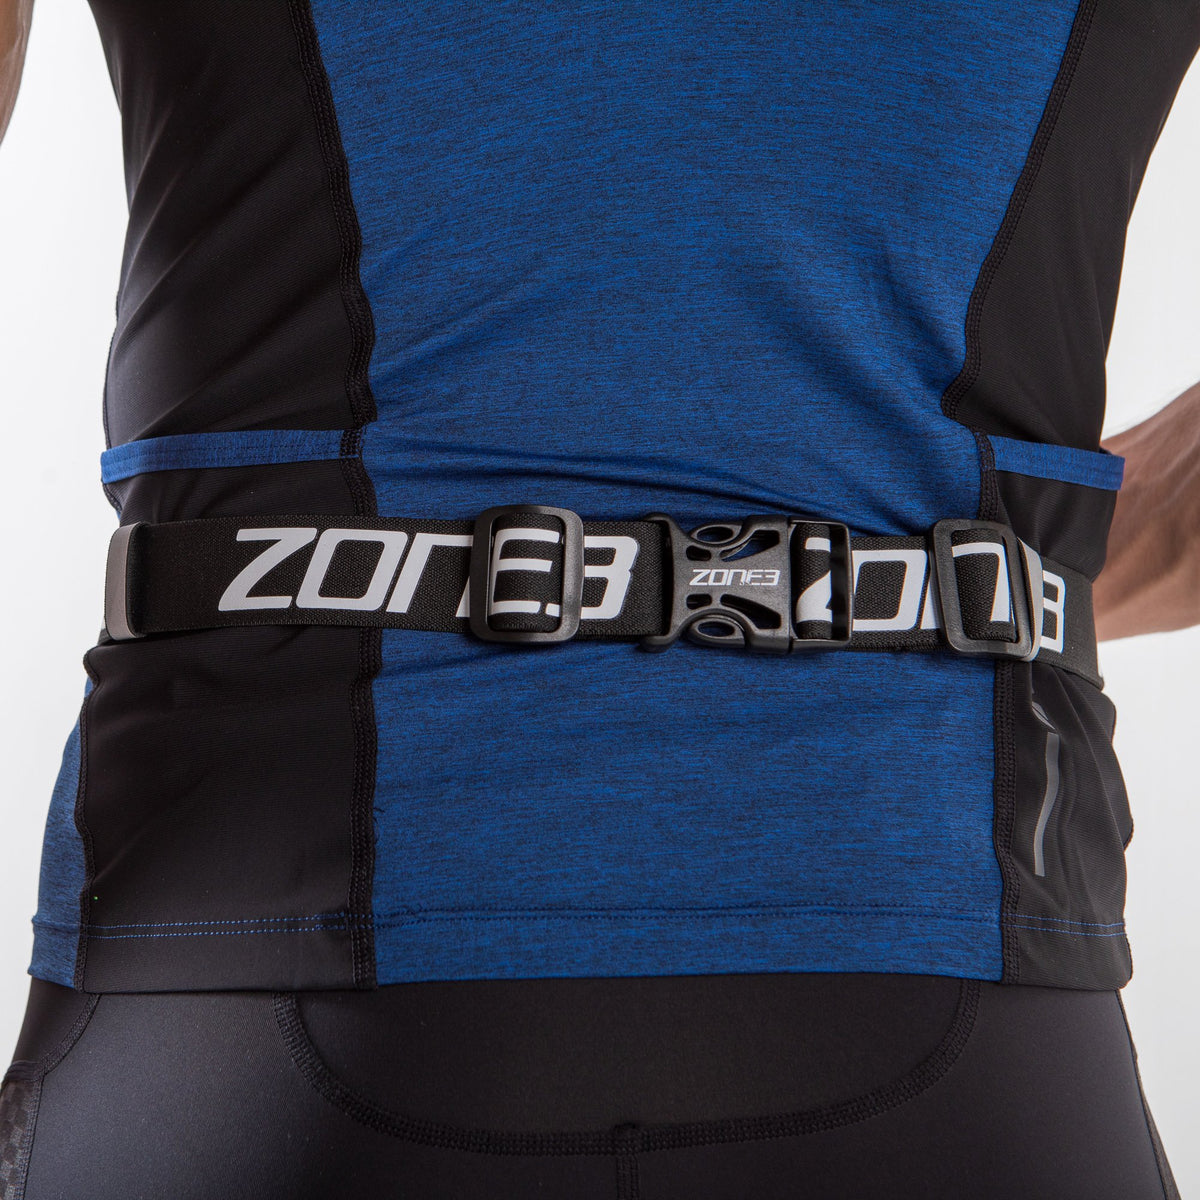 Endurance Number Belt with Lycra Fuel Pouch and Energy Gel Storage clip